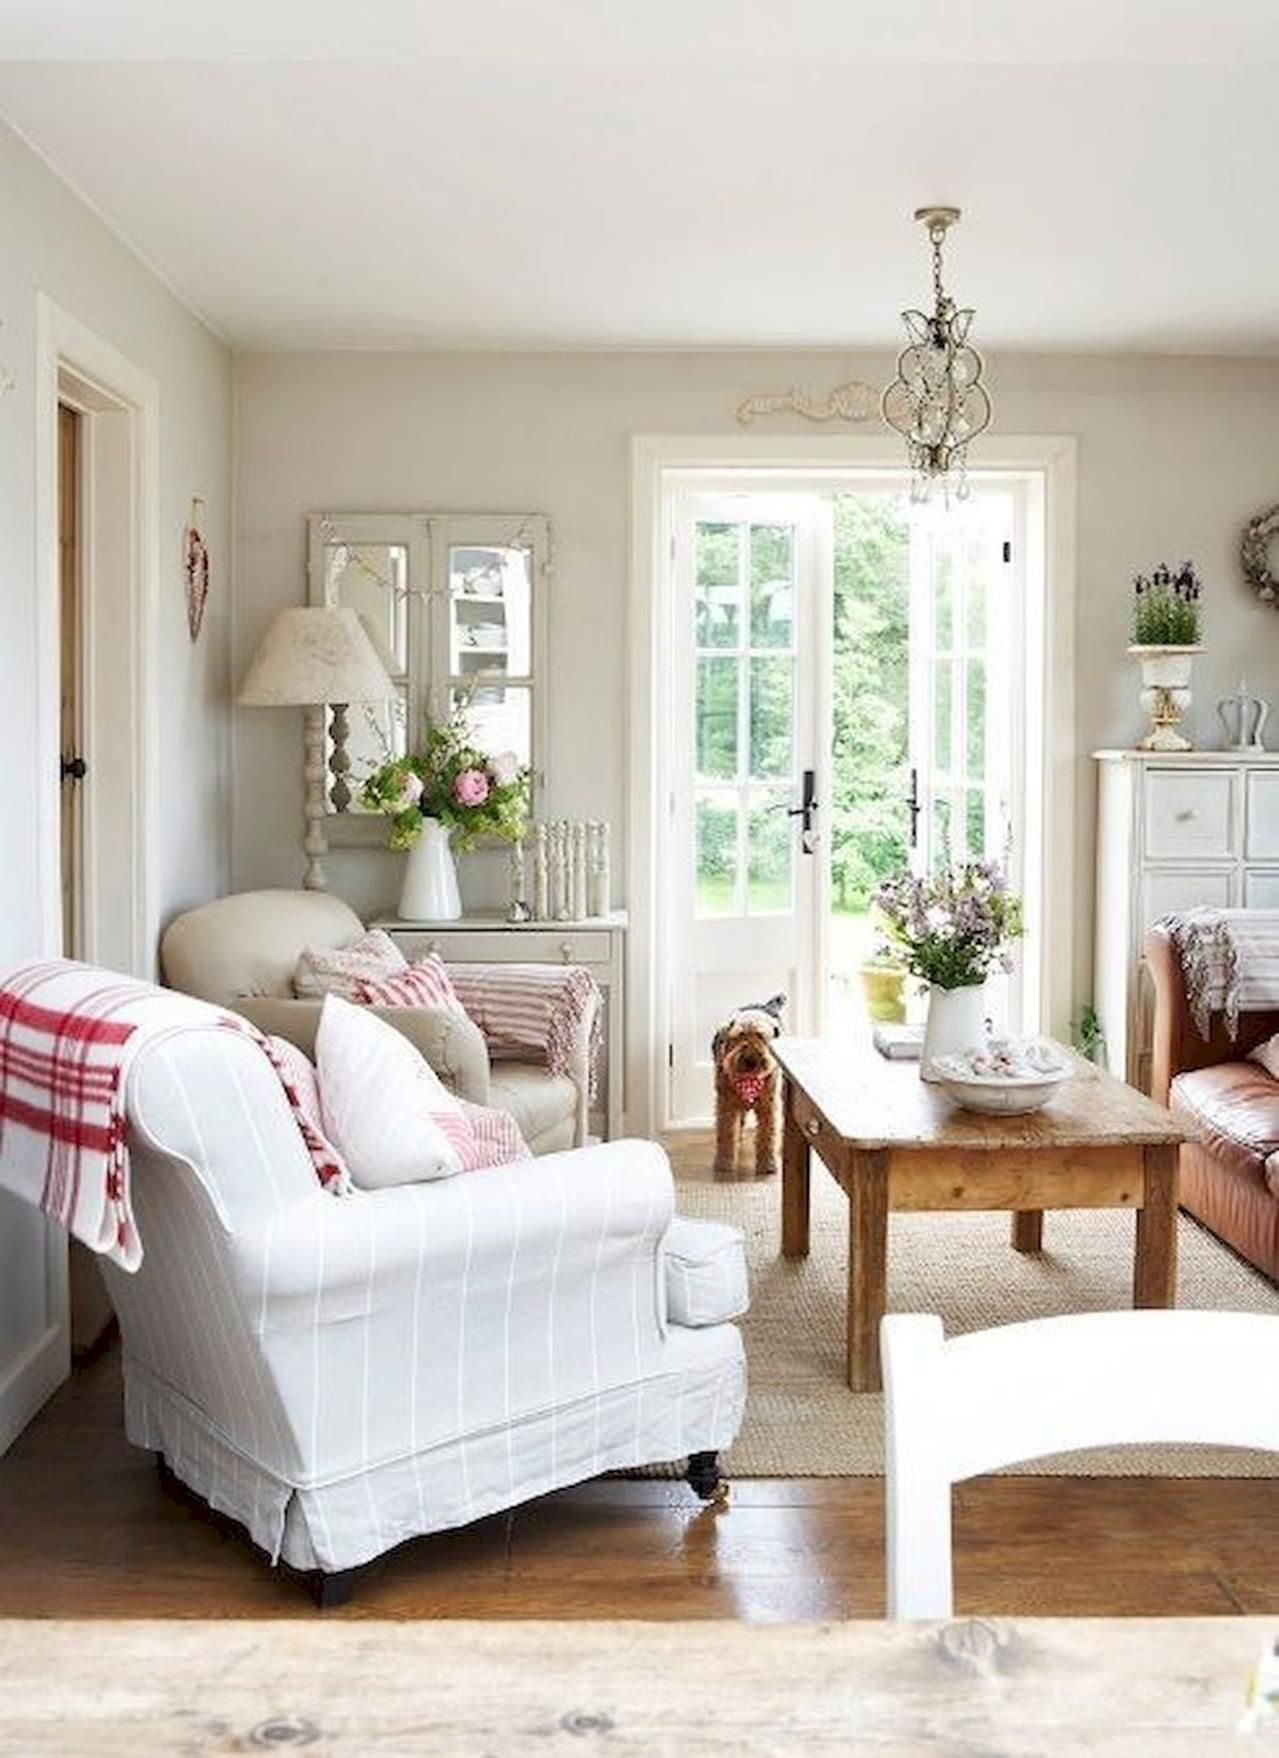 24 Adorable French Country Living Room Decorating Ideas Viralinspirations Country Style Living Room French Country Living Room Living Room Decor Country